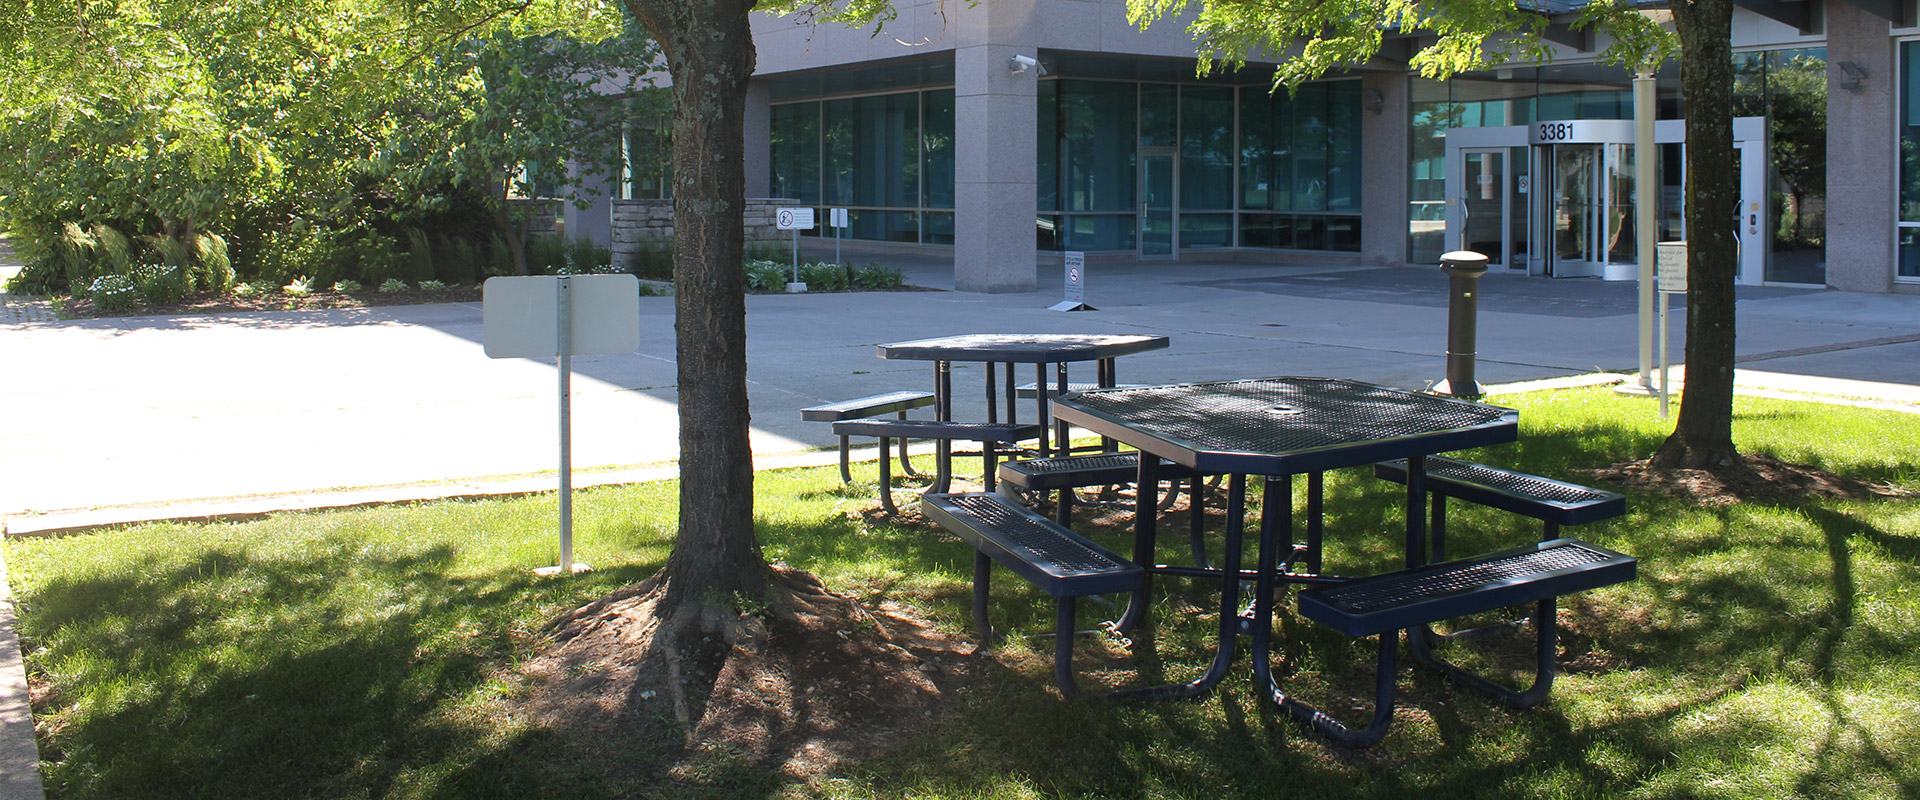 green space at steelestech office complex